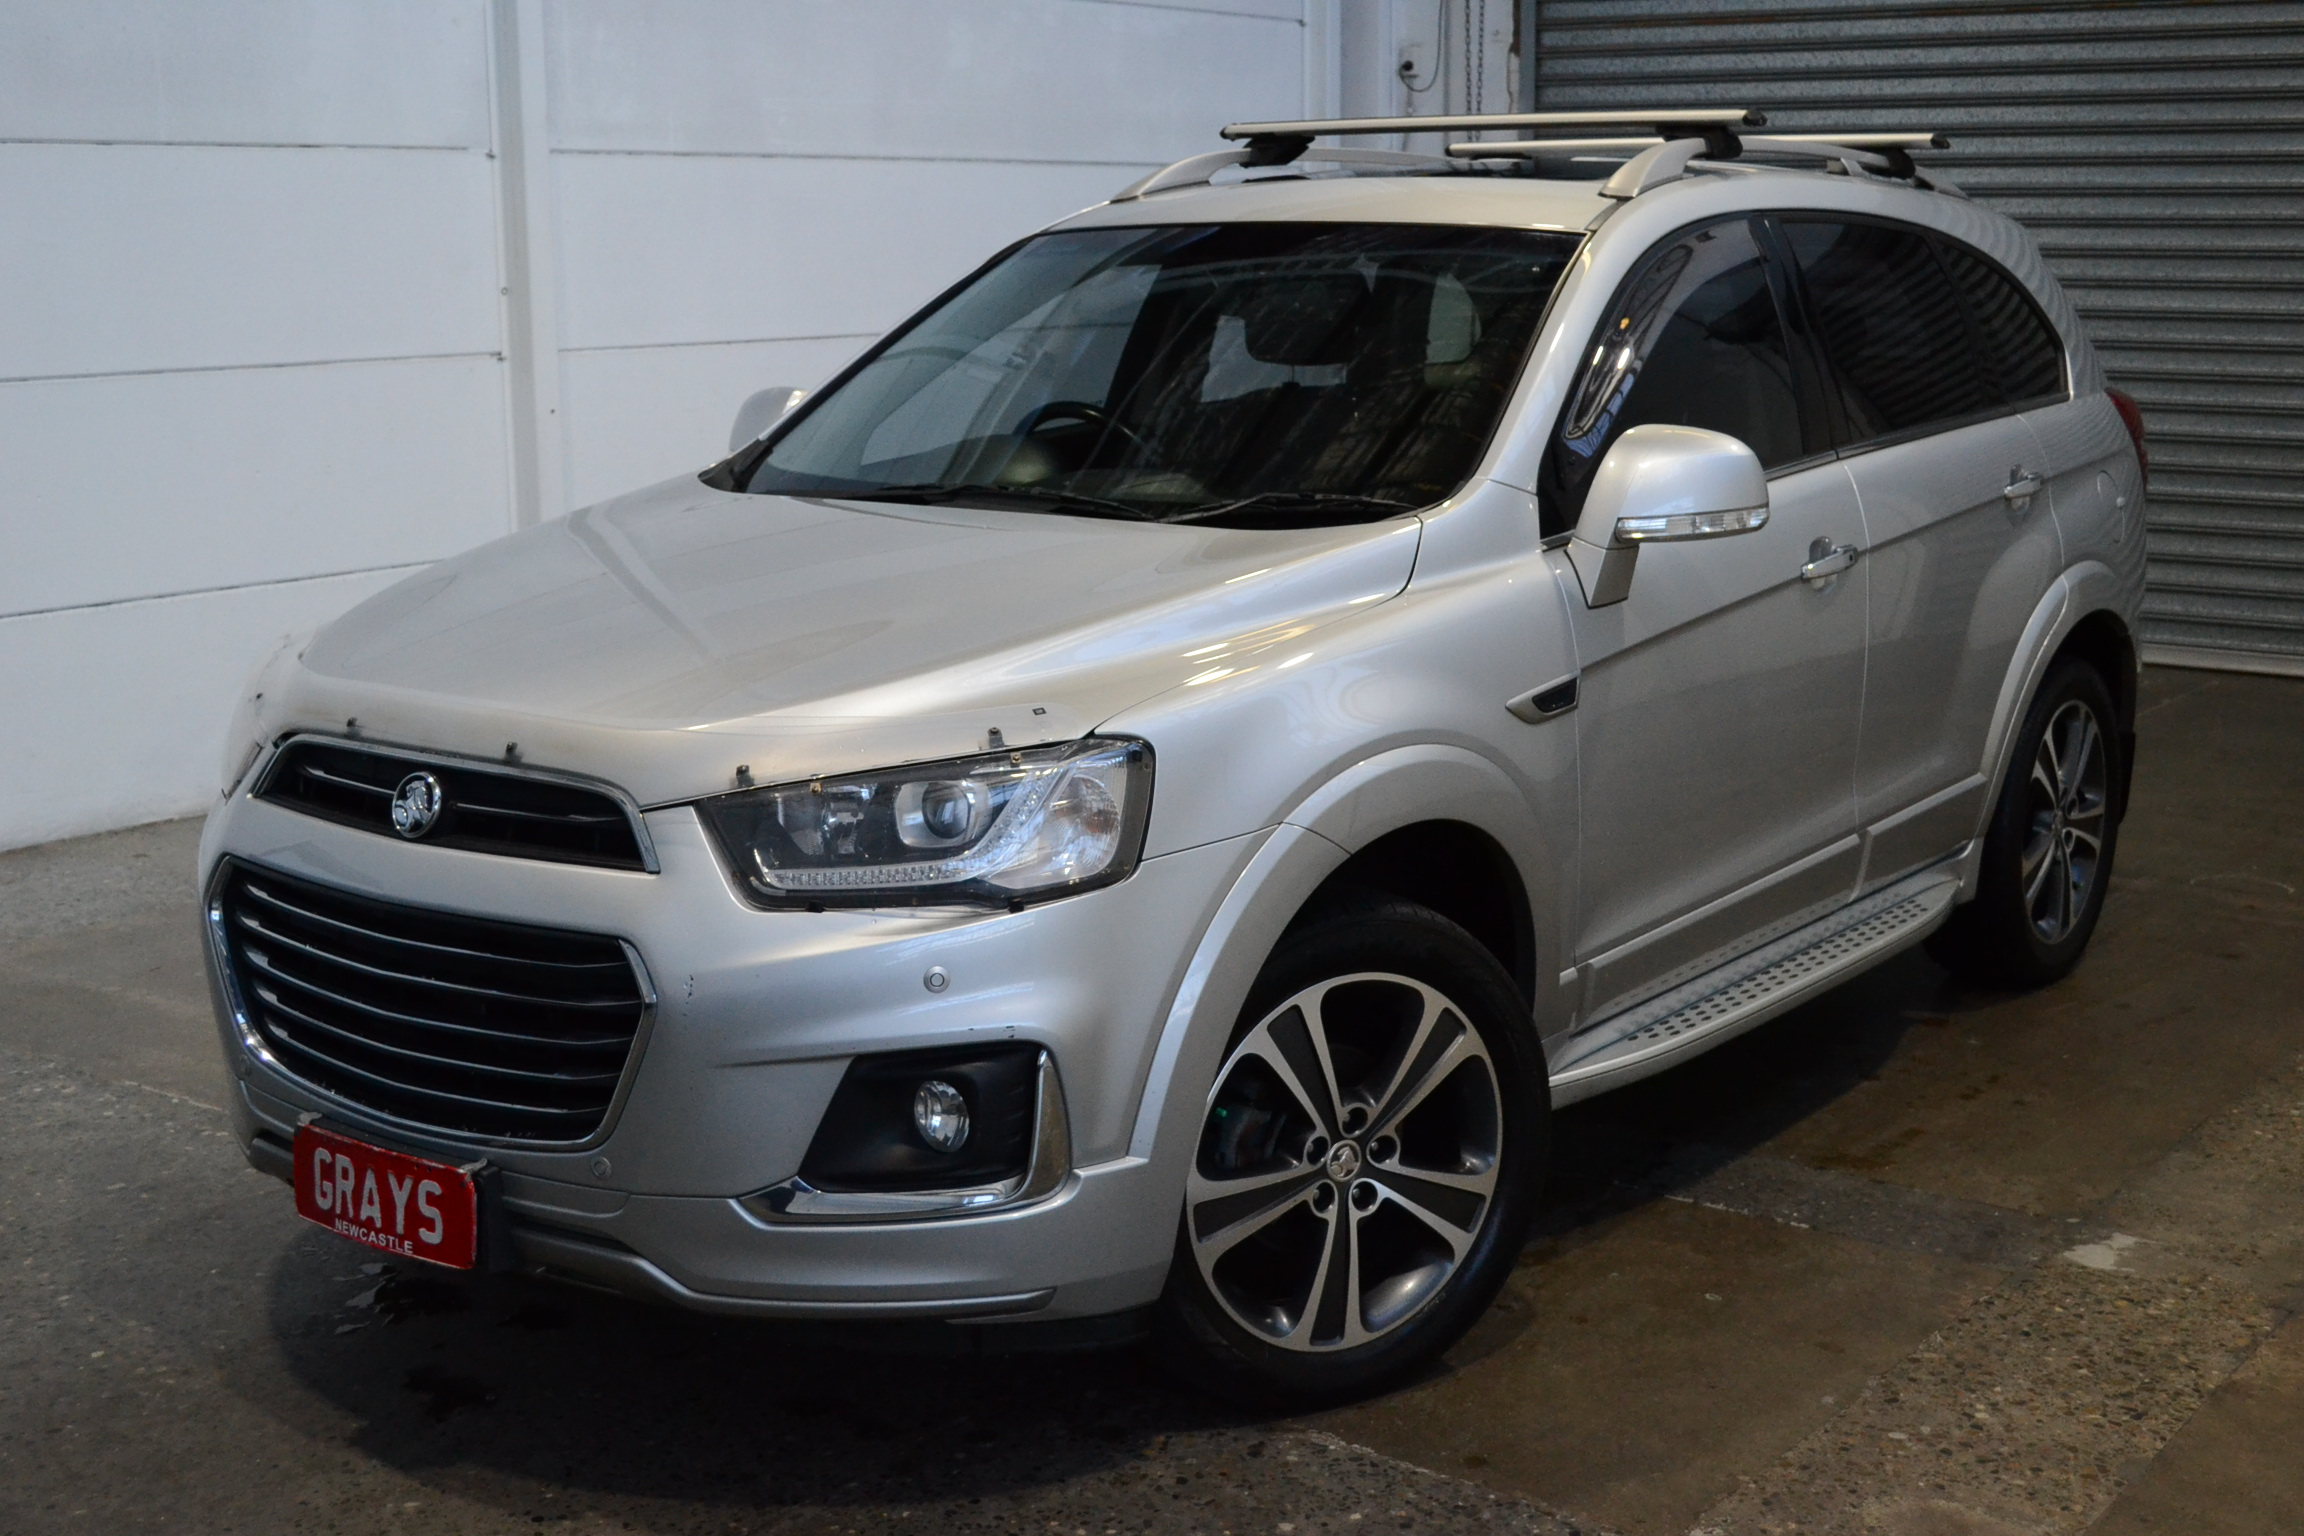 2016 Holden Captiva 7 LTZ AWD CG II Turbo Diesel Automatic 7 Seats Wagon